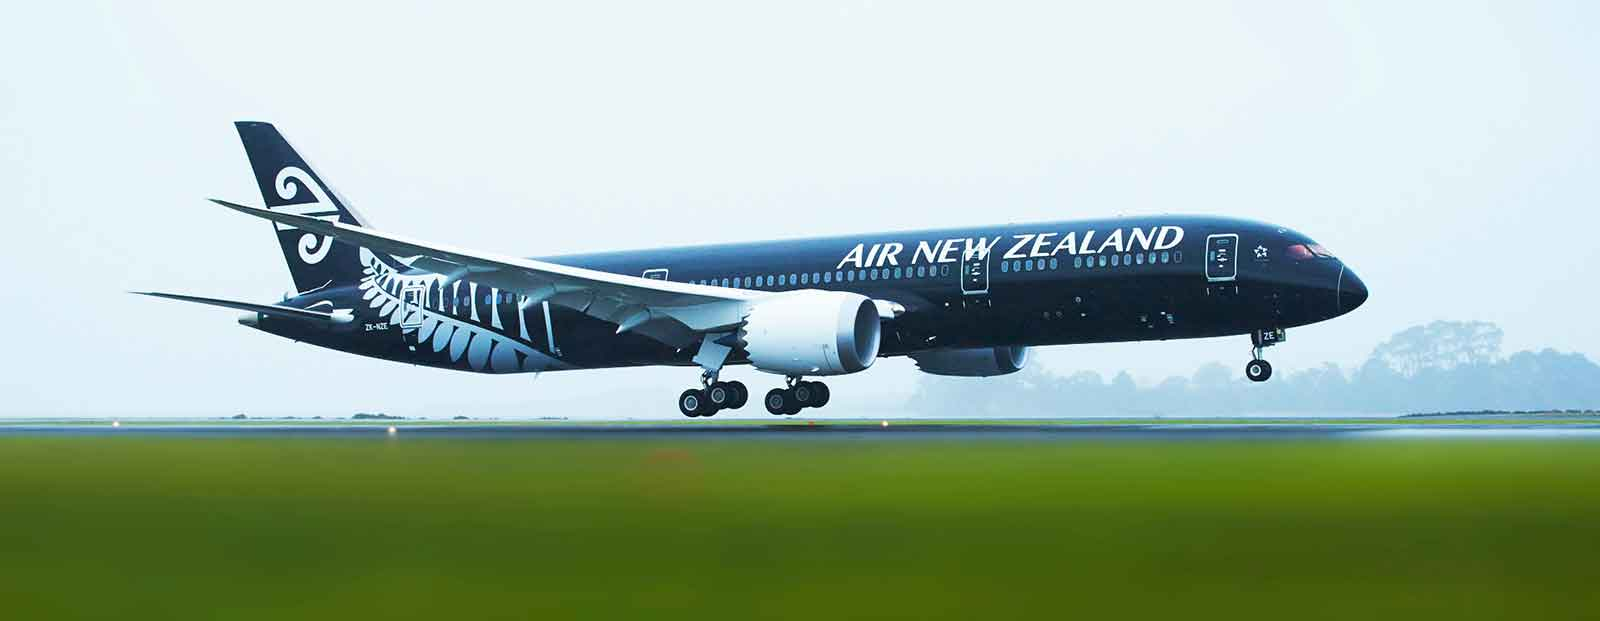 Proposed Alliance unveiled by Air New Zealand and Air China - Shanghai-Auckland codeshare flights will use 787-9 Dreamliner